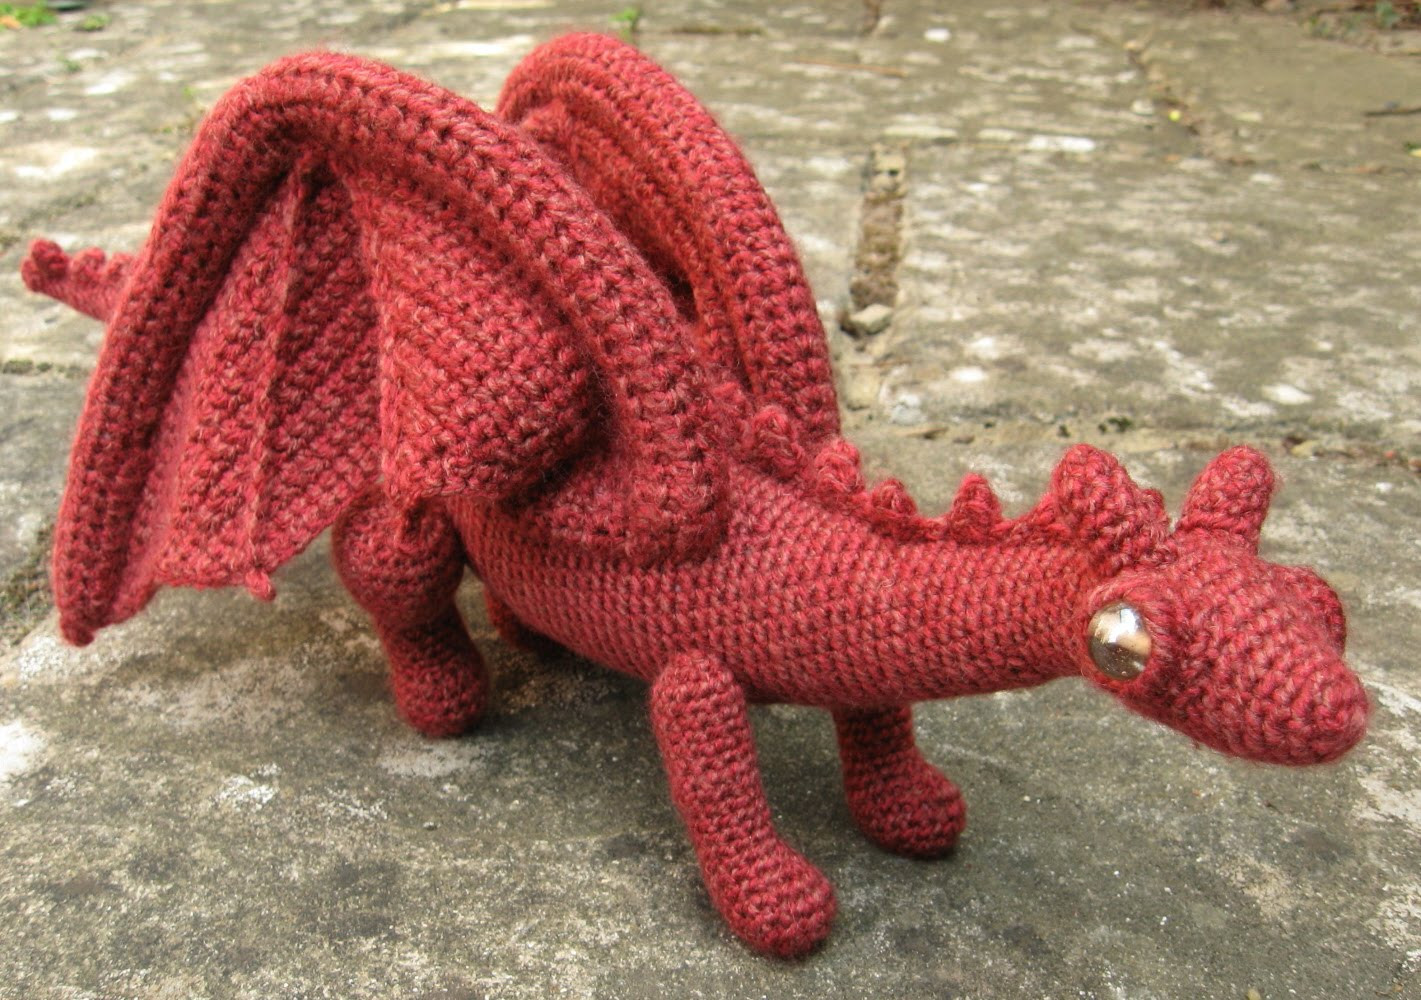 Fresh Lucyravenscar Crochet Creatures Dragonet Pattern Crochet Dragon Pattern Of Brilliant 50 Pictures Crochet Dragon Pattern